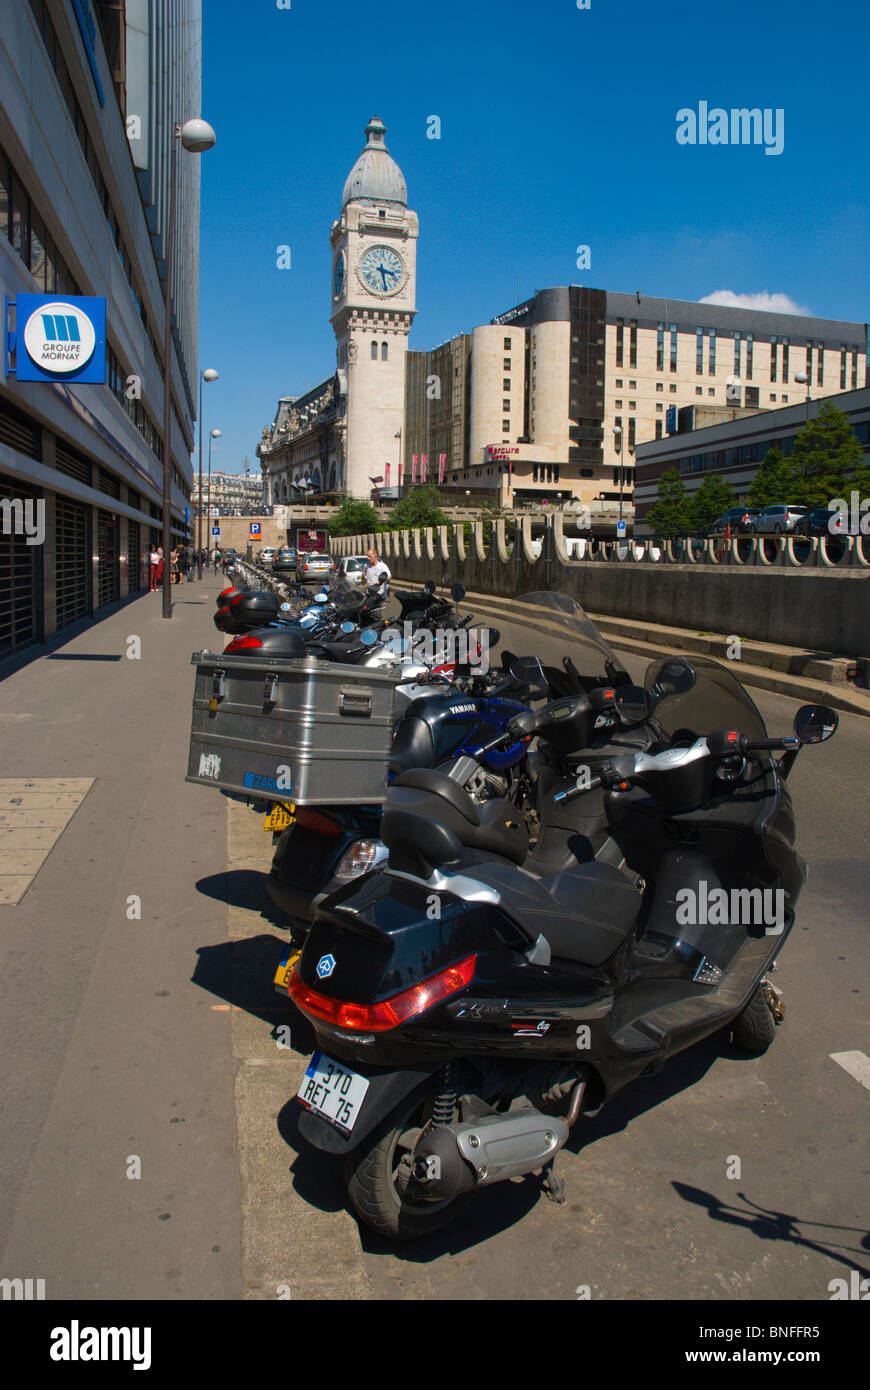 Parked mopeds scooters and motorbikes Bercy district central Paris France Europe - Stock Image